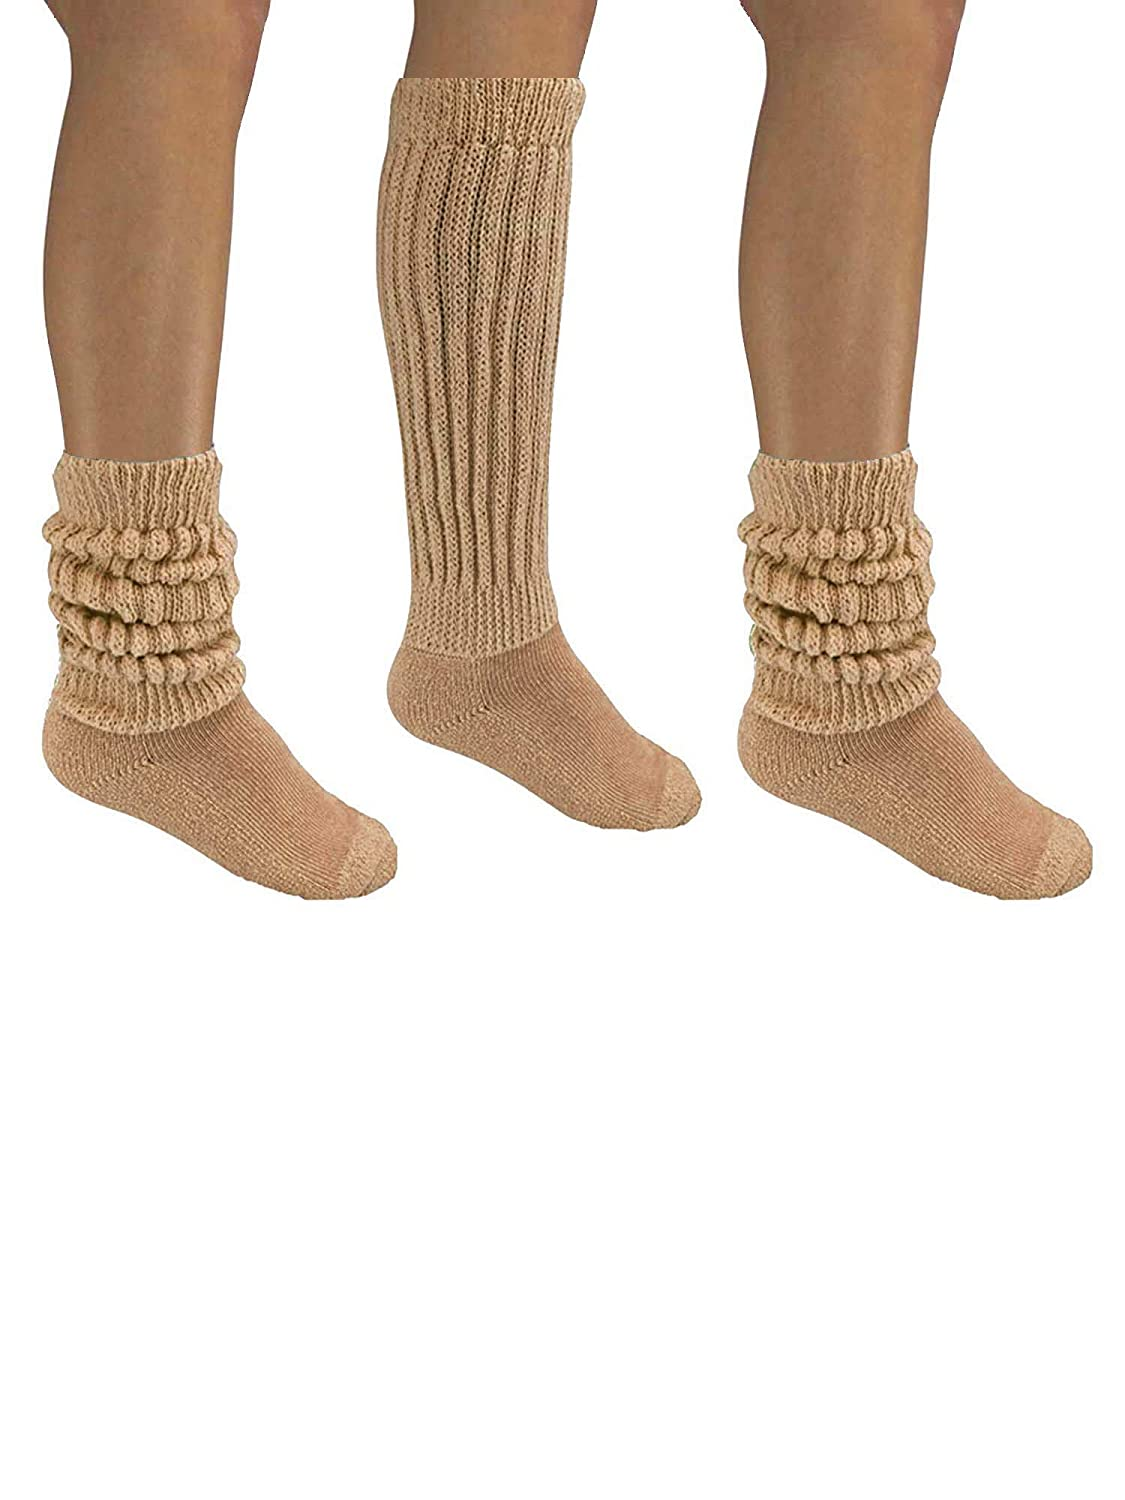 b9f5cff7f13 Amazon.com  Nude Beige All Cotton 3 Pack Extra Heavy Super Slouch Socks   Clothing